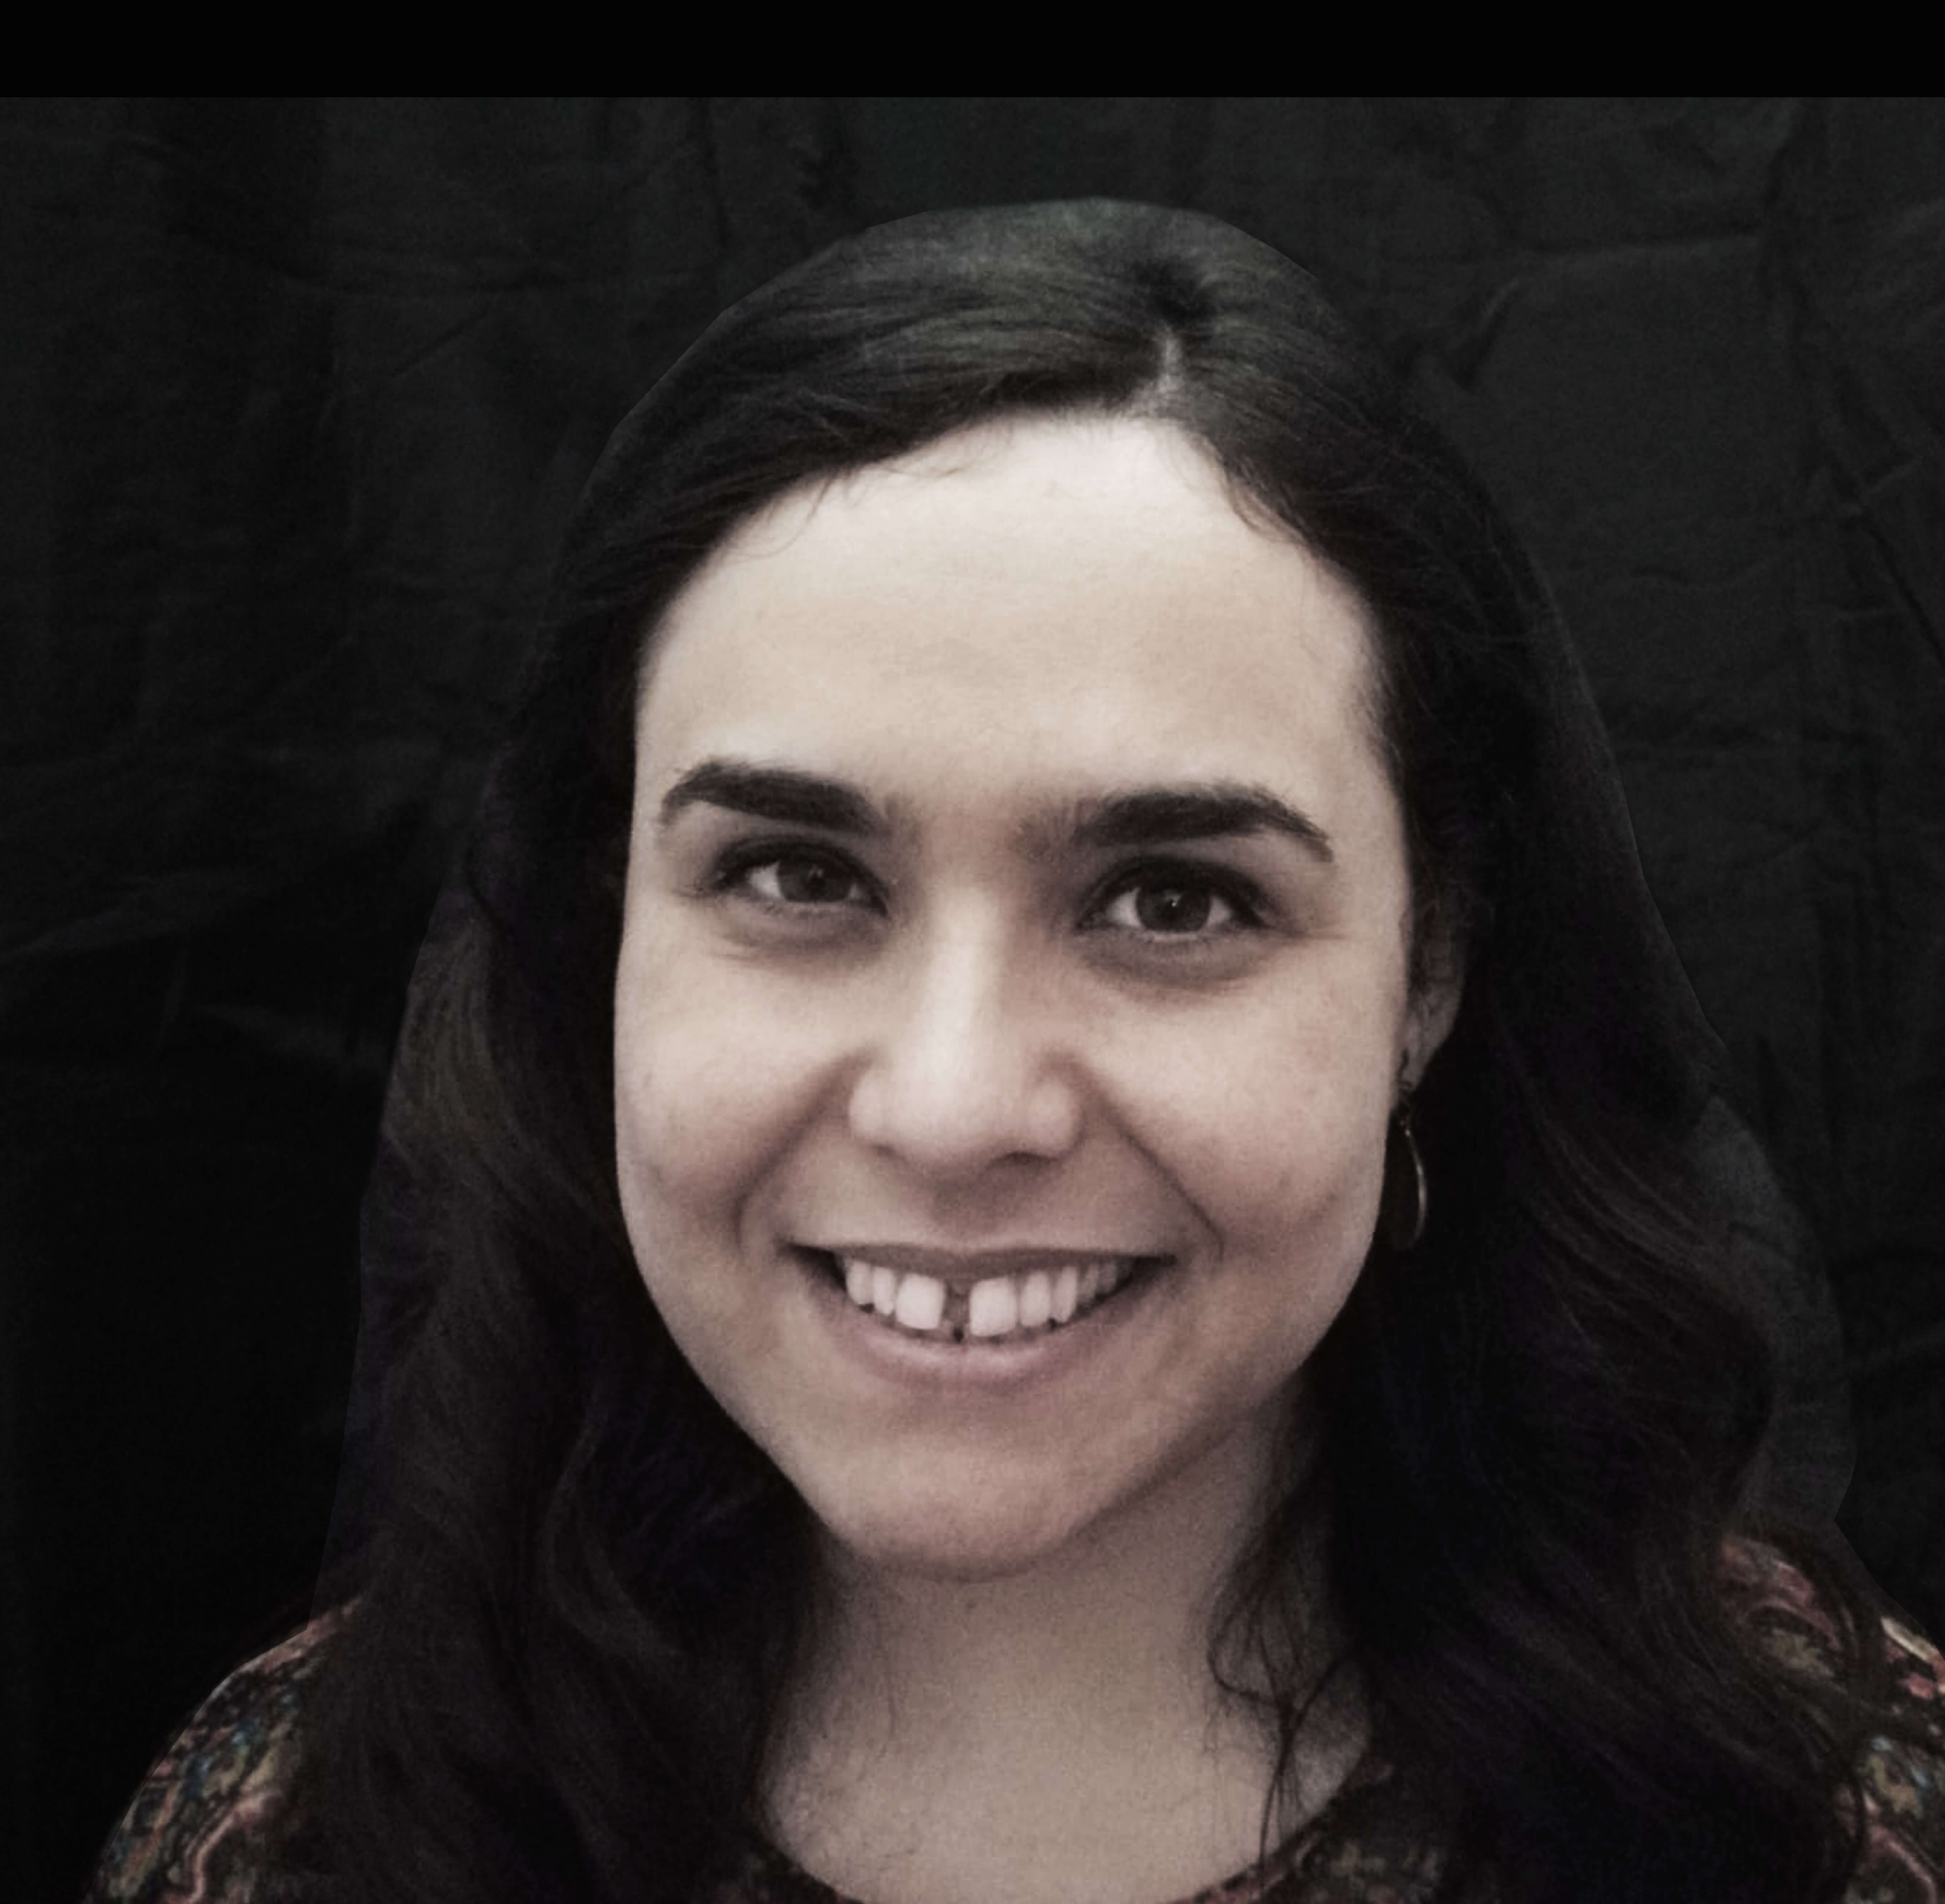 Maria Luisa - Vendor Manager at All-in Global